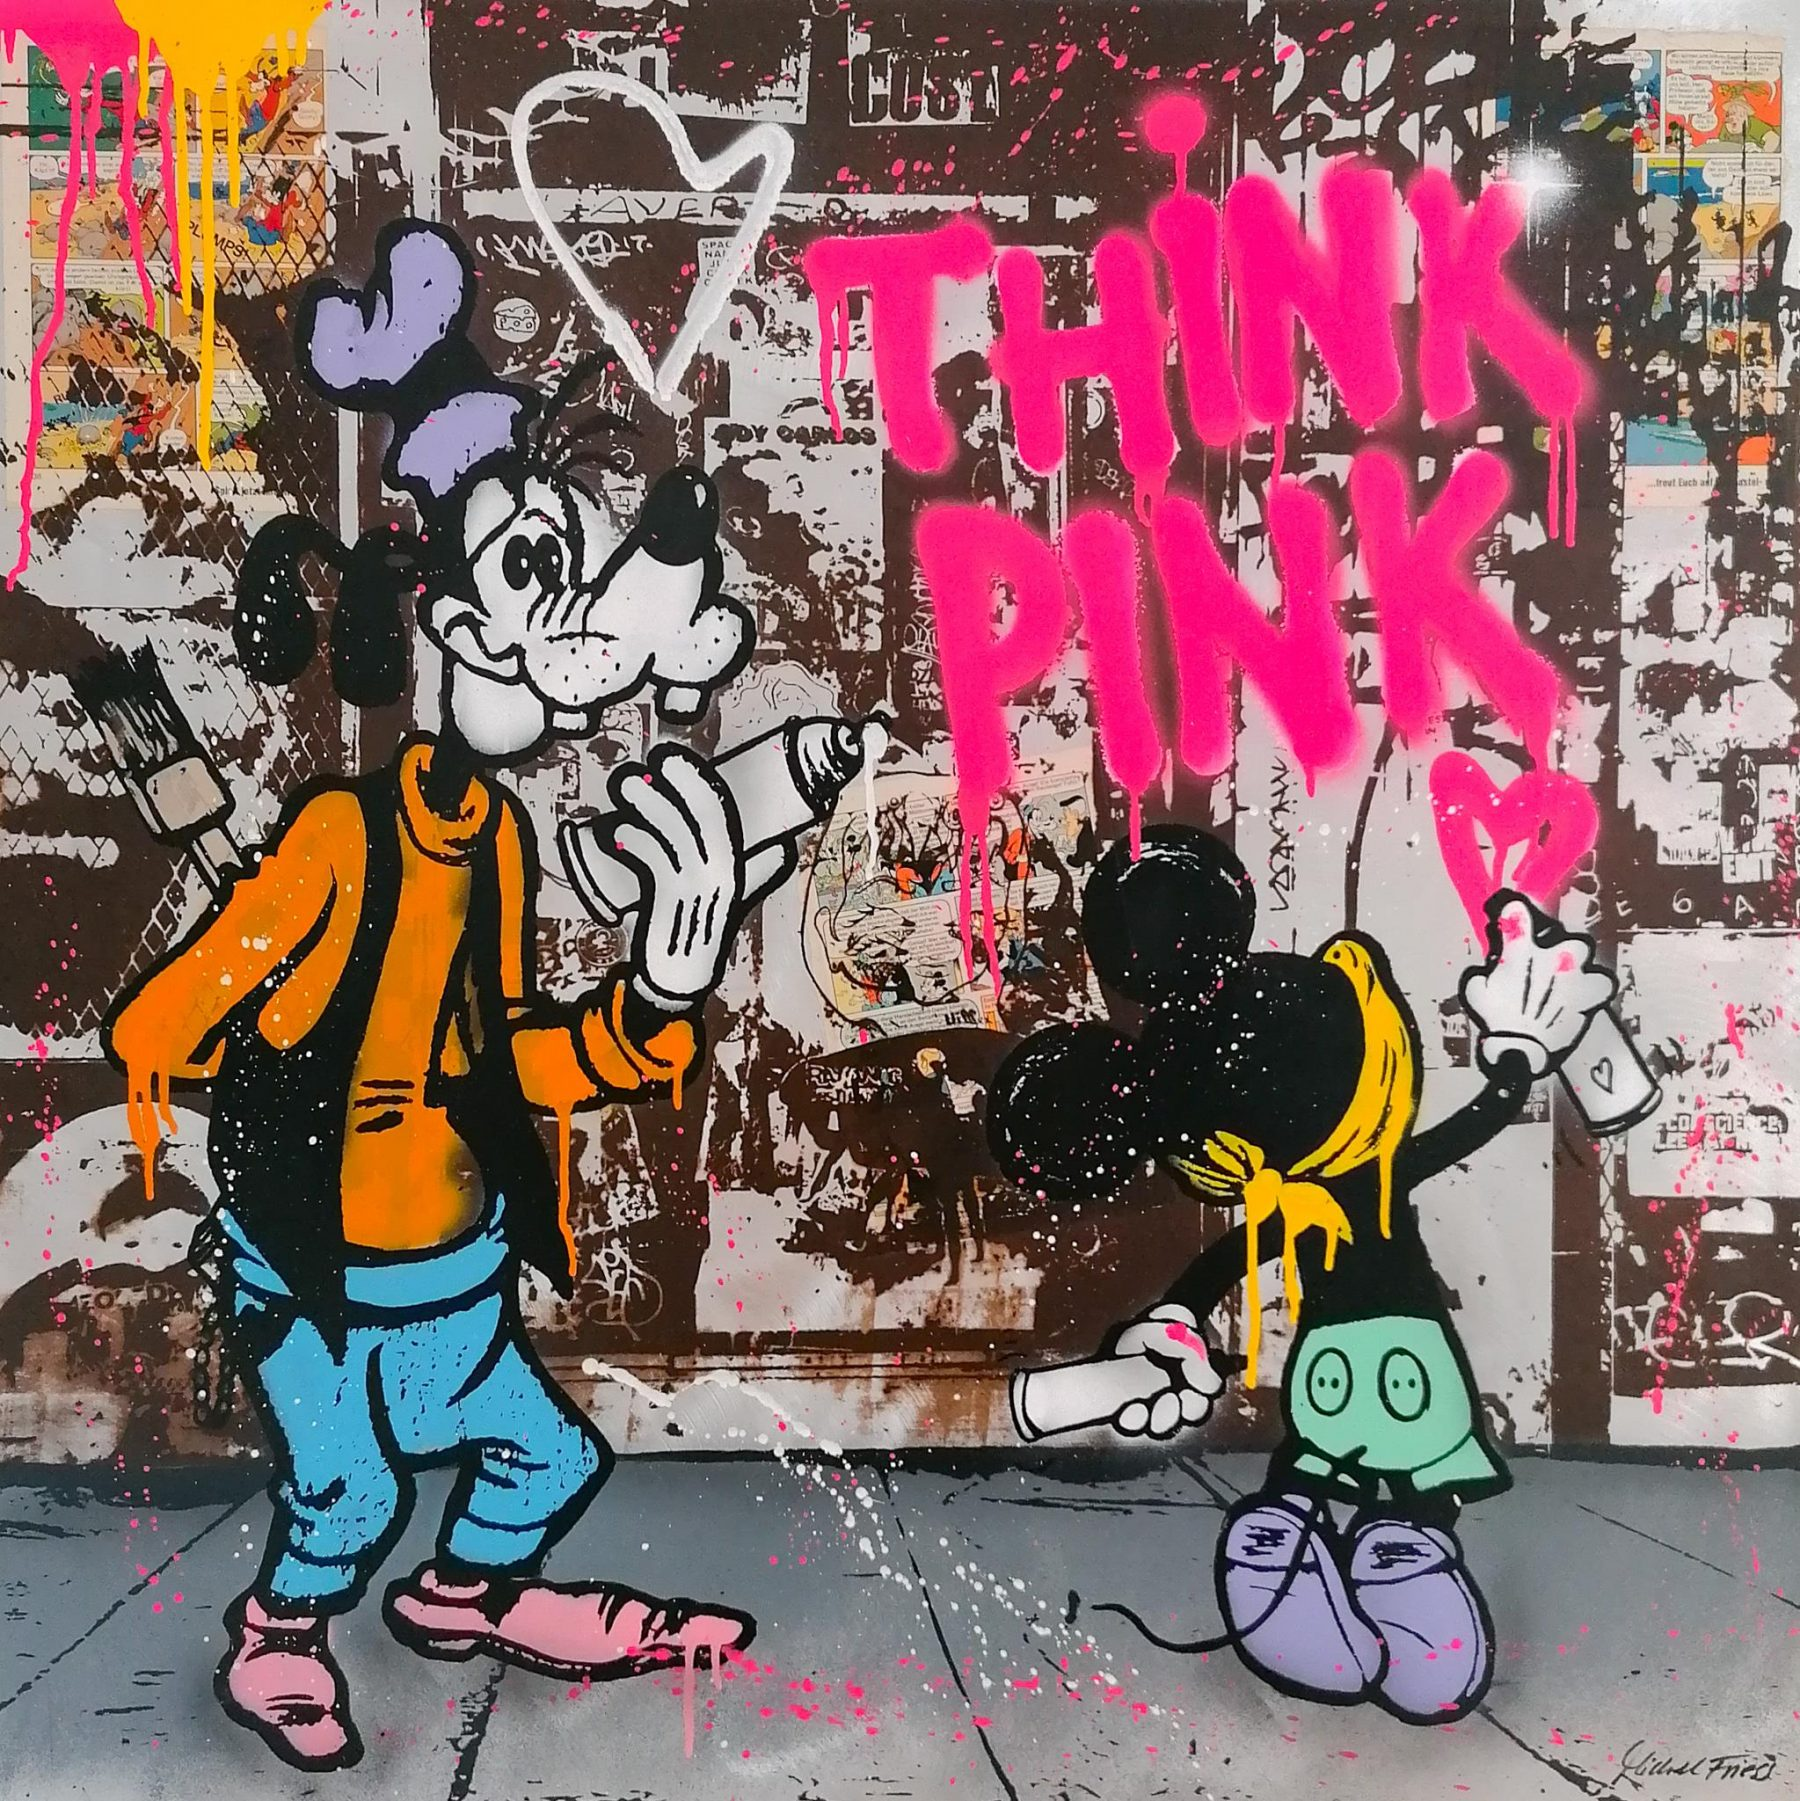 Michel Friess: Think Pink, Original Collage auf Aluminium, 100 x 100 cm, Unikat, handsigniert, 3.800€